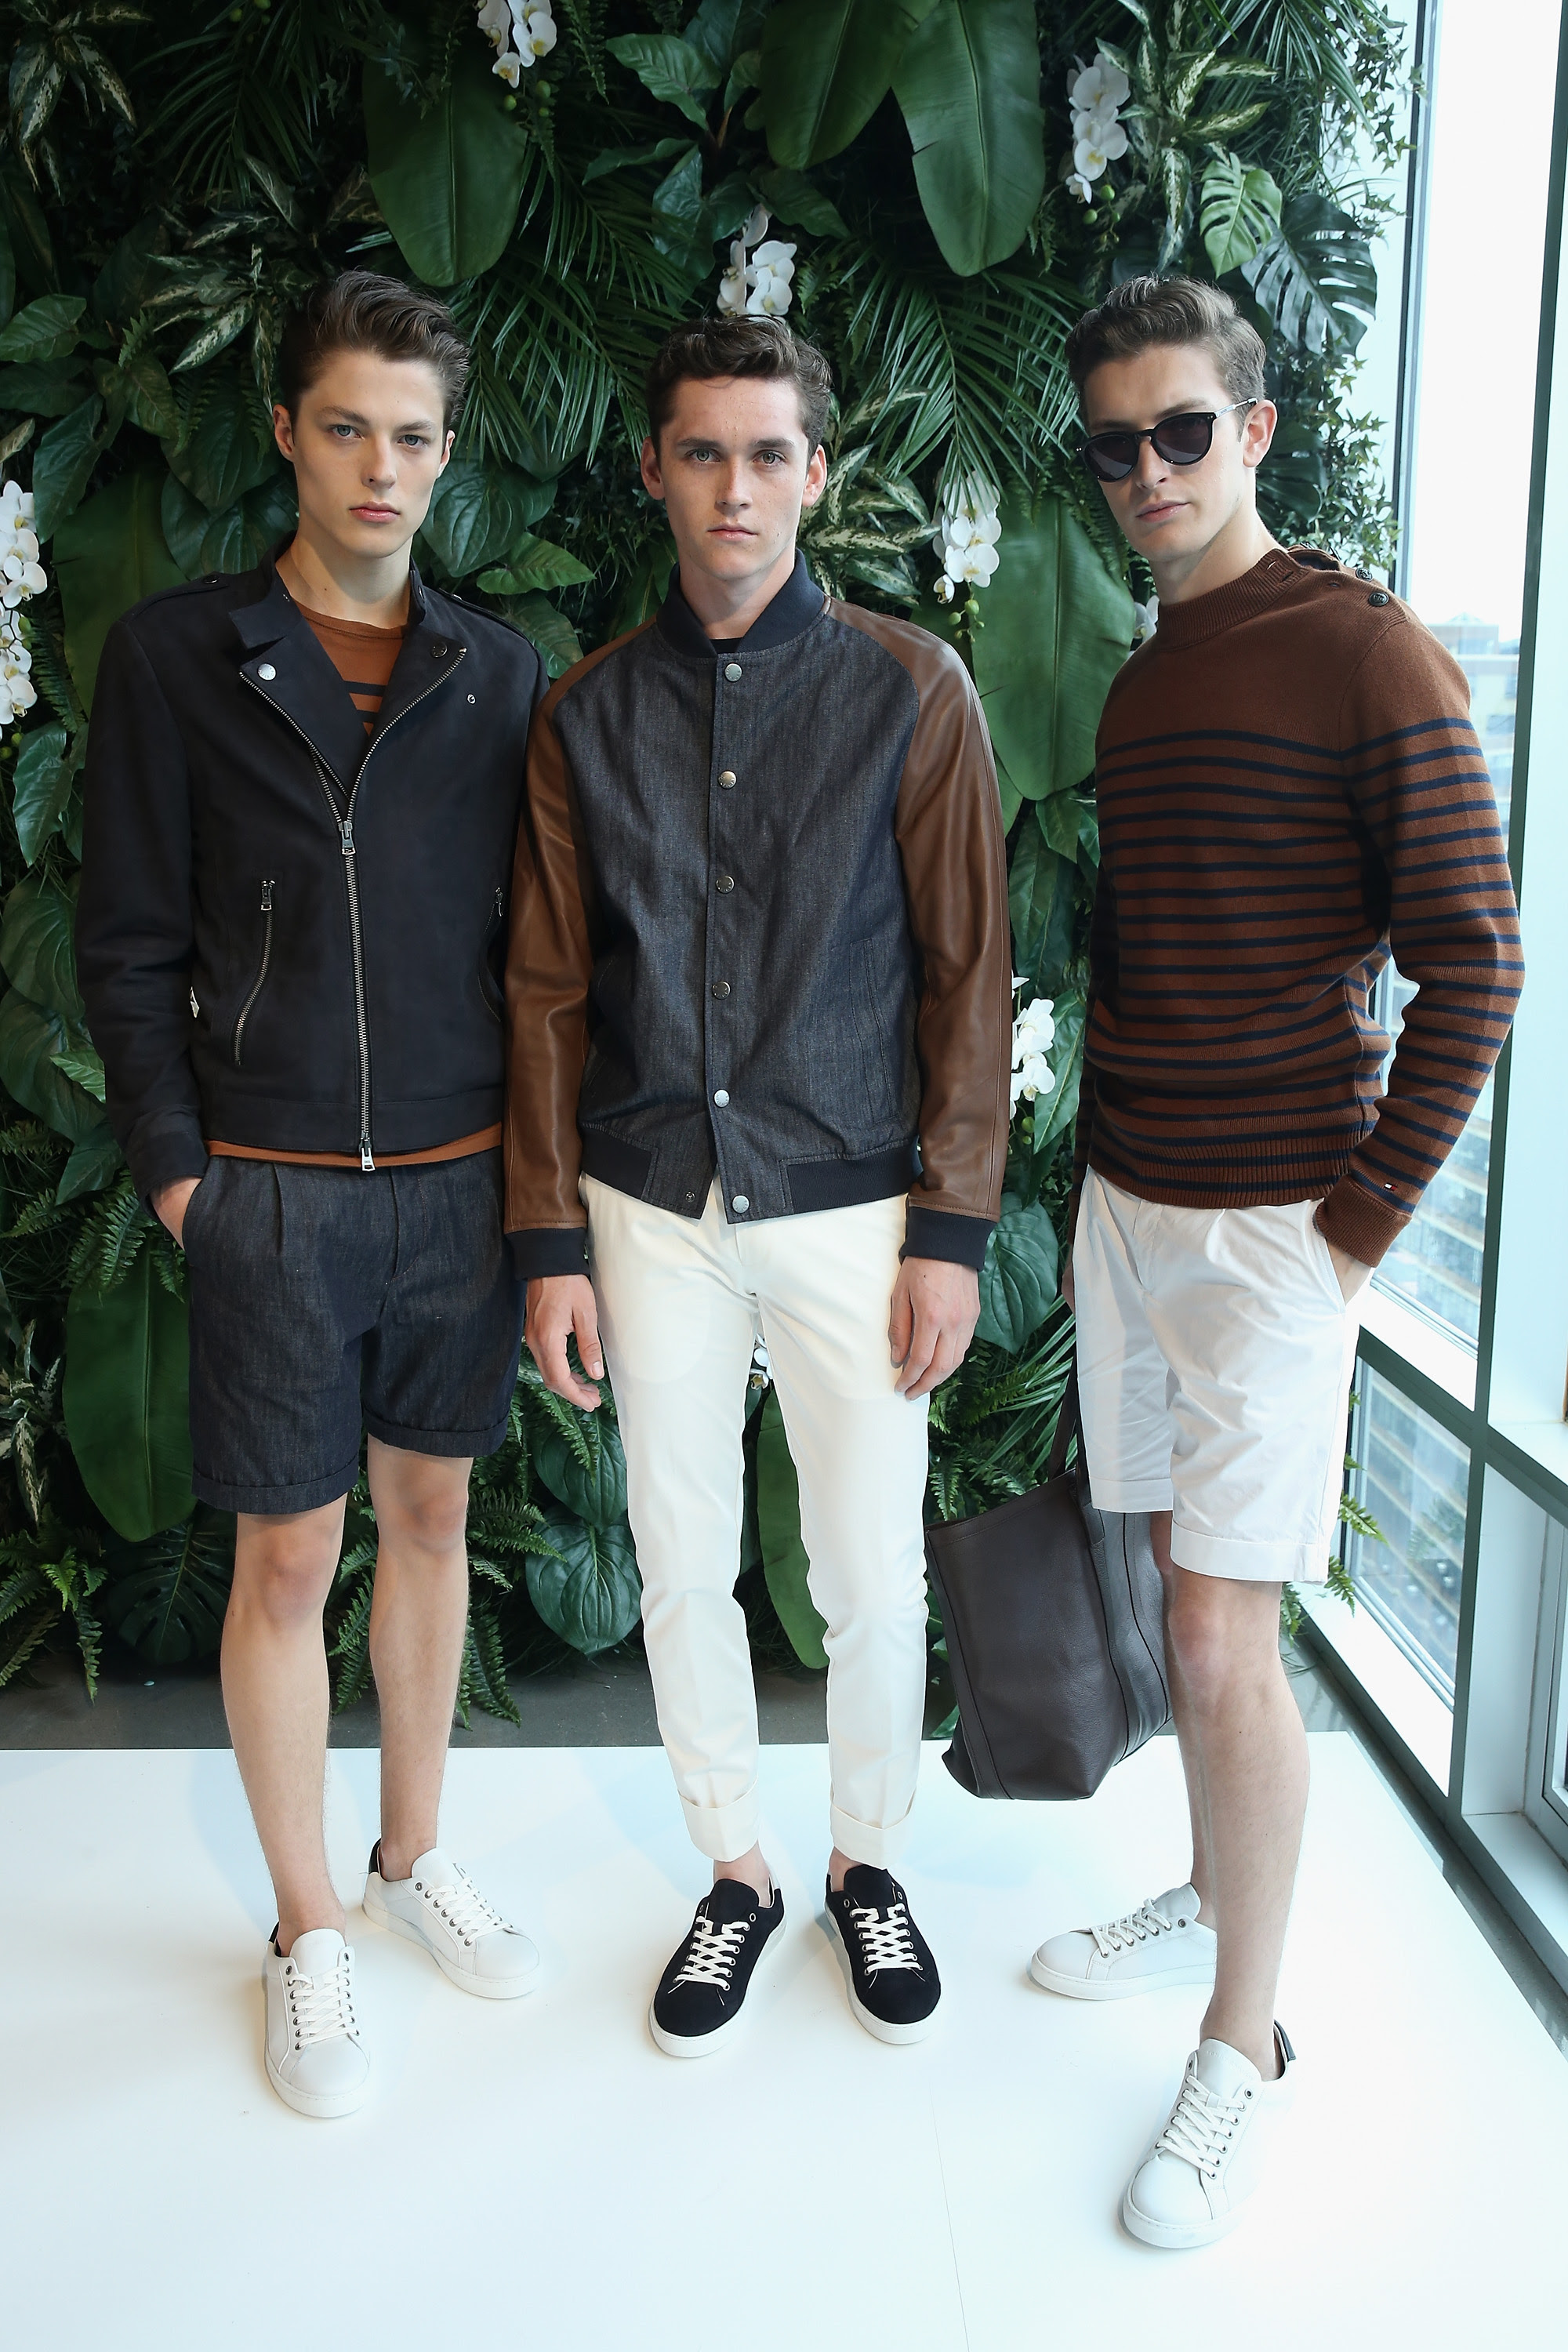 tommy hilfiger's spring 2016 men's collection